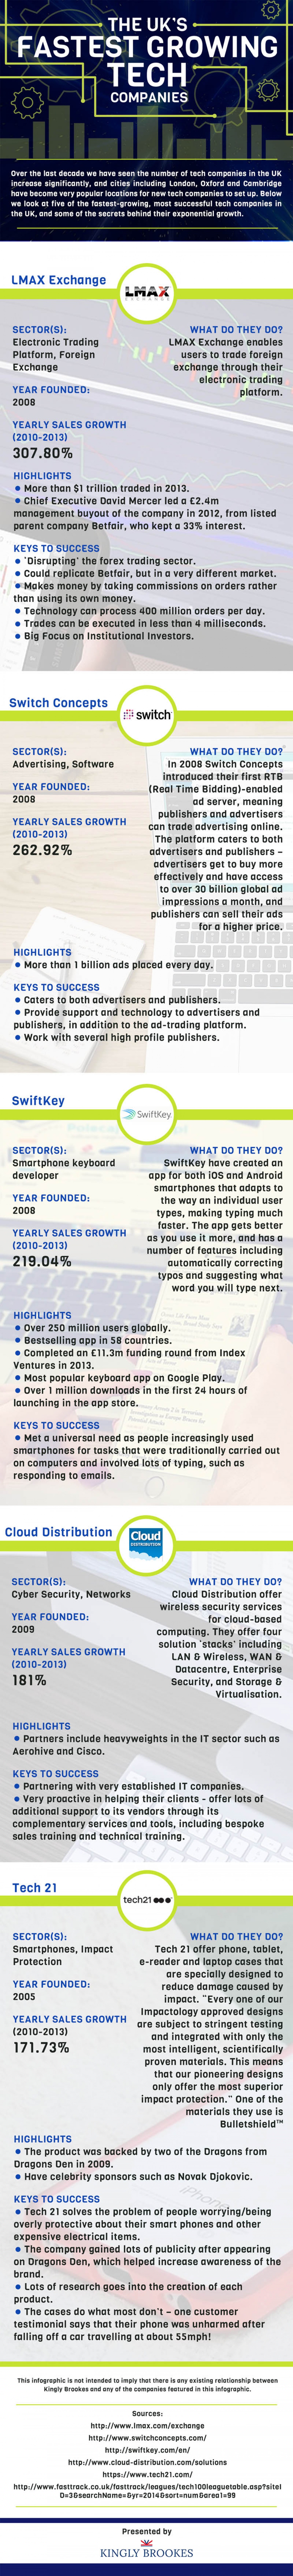 The UK's Fastest Growing Tech Companies Infographic